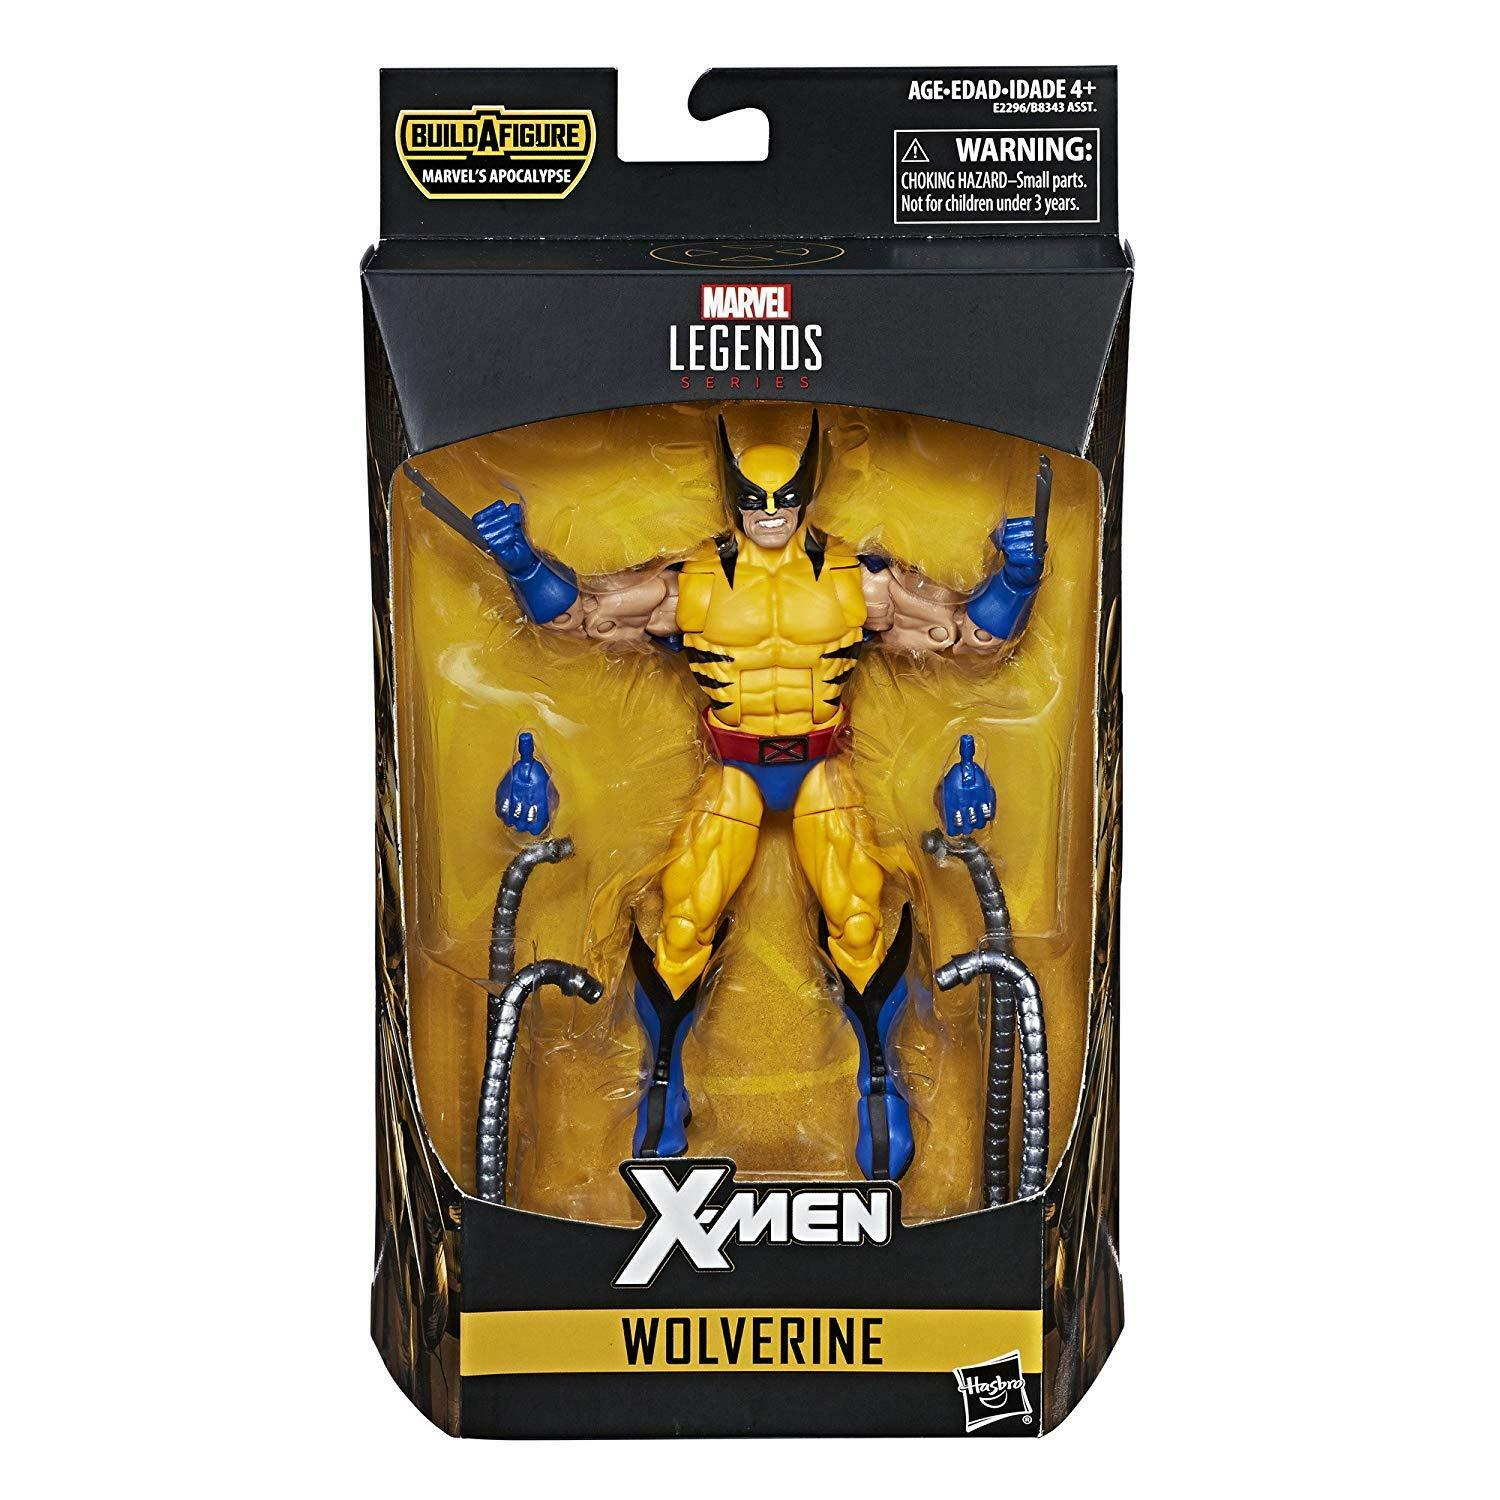 Marvel Legends X-Men Wolverine 6 Inch Action Figure IN STOCK 아이템 넘버   202397505731.   5fc97f592a5